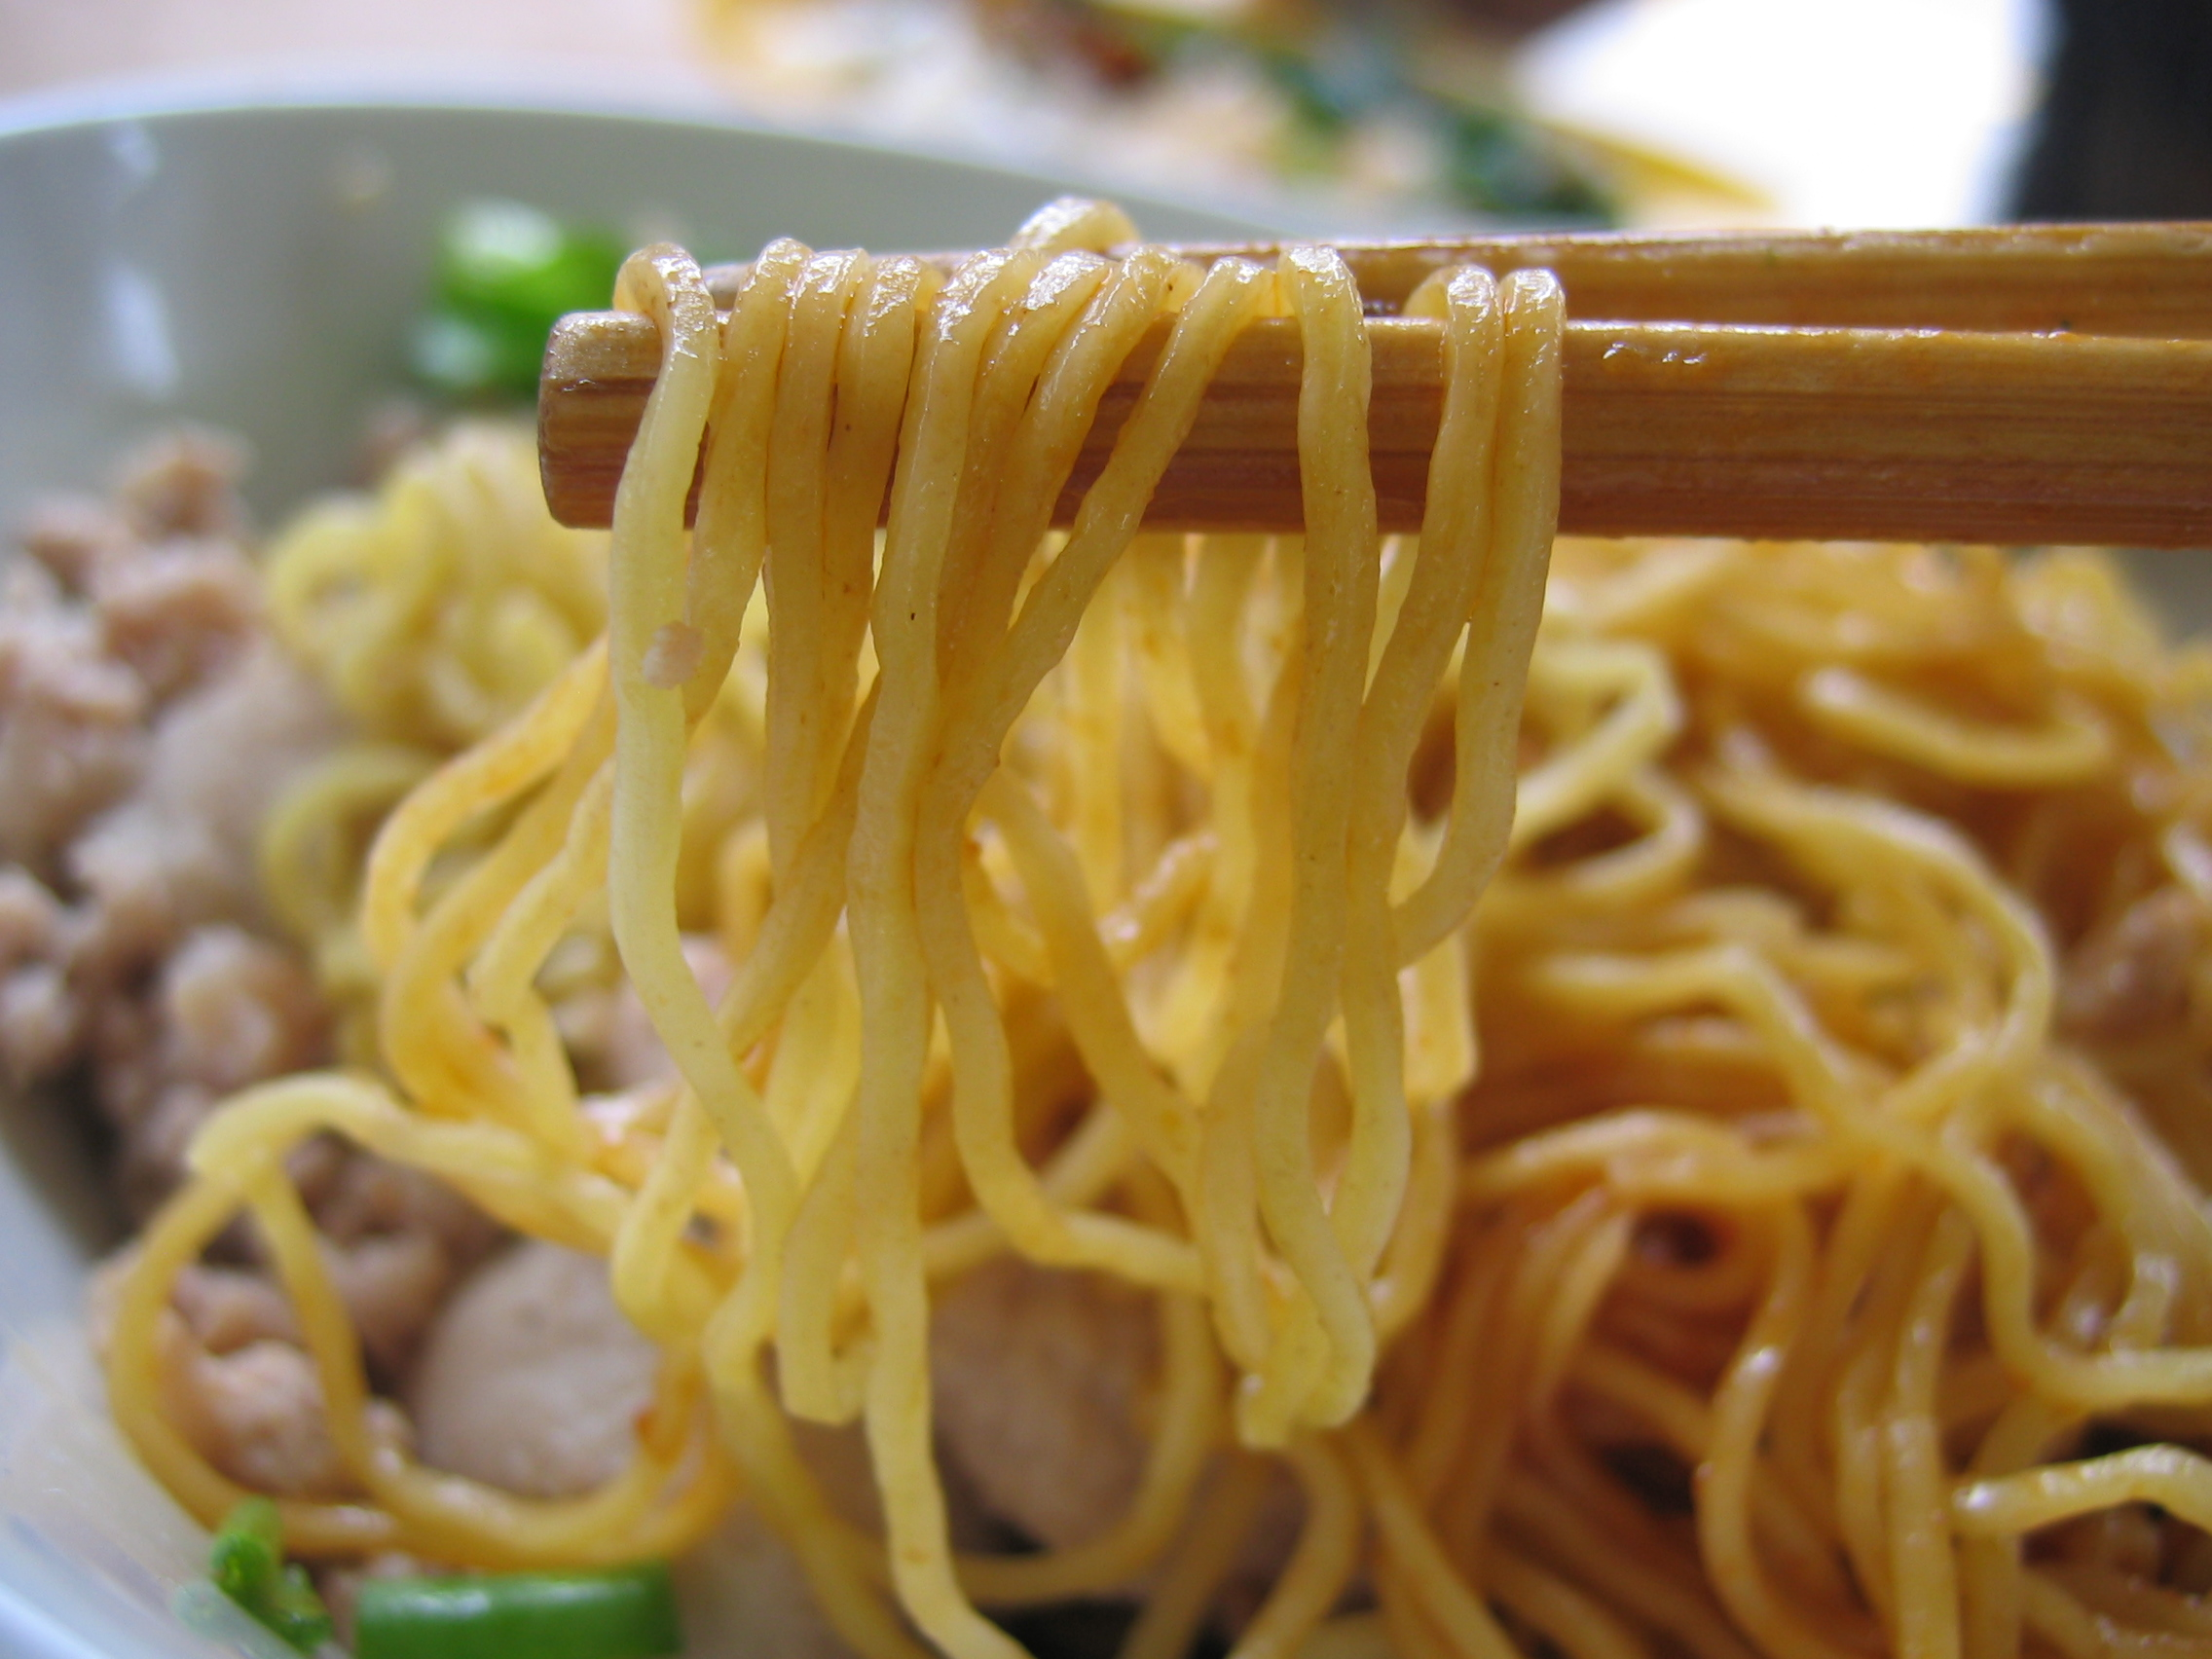 images of noodles - photo #32